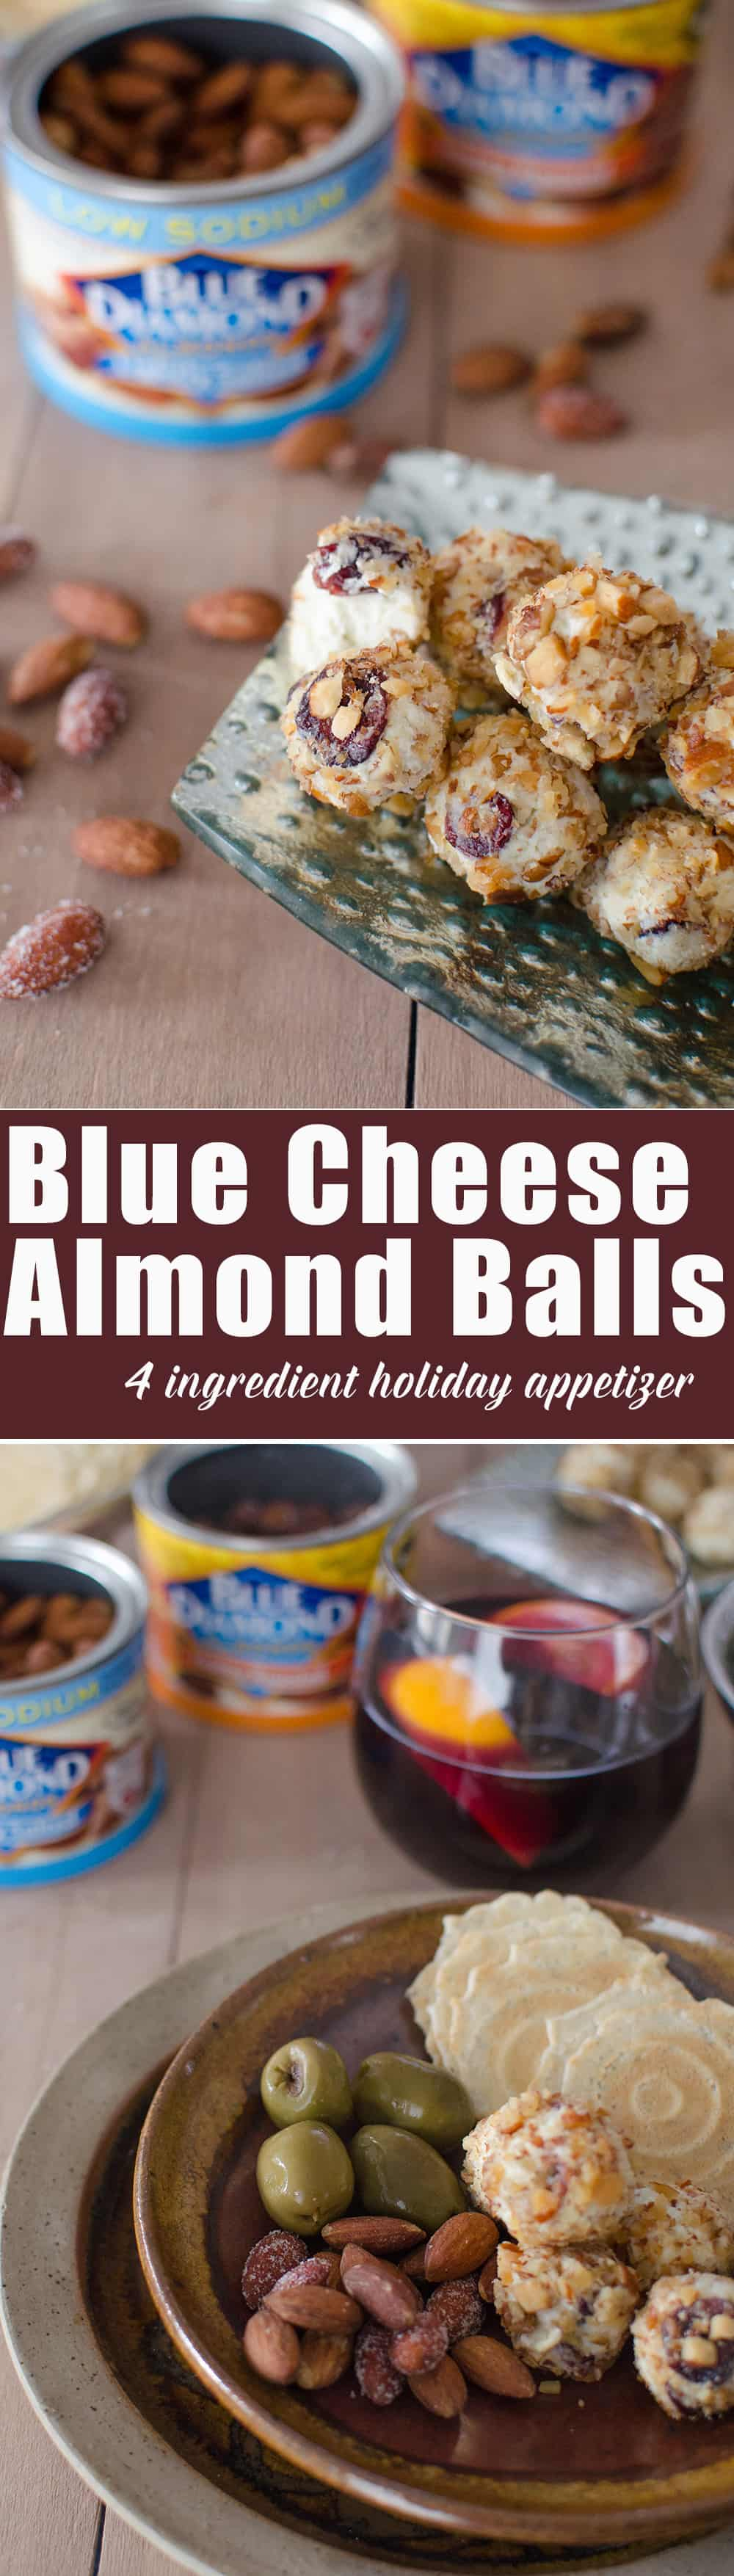 4 Ingredient holiday appetizer idea! Blue Cheese and Honey Almond Balls! Easy entertaining idea, a must for get-togethers this winter! @bluediamond | www.delishknowedge.com